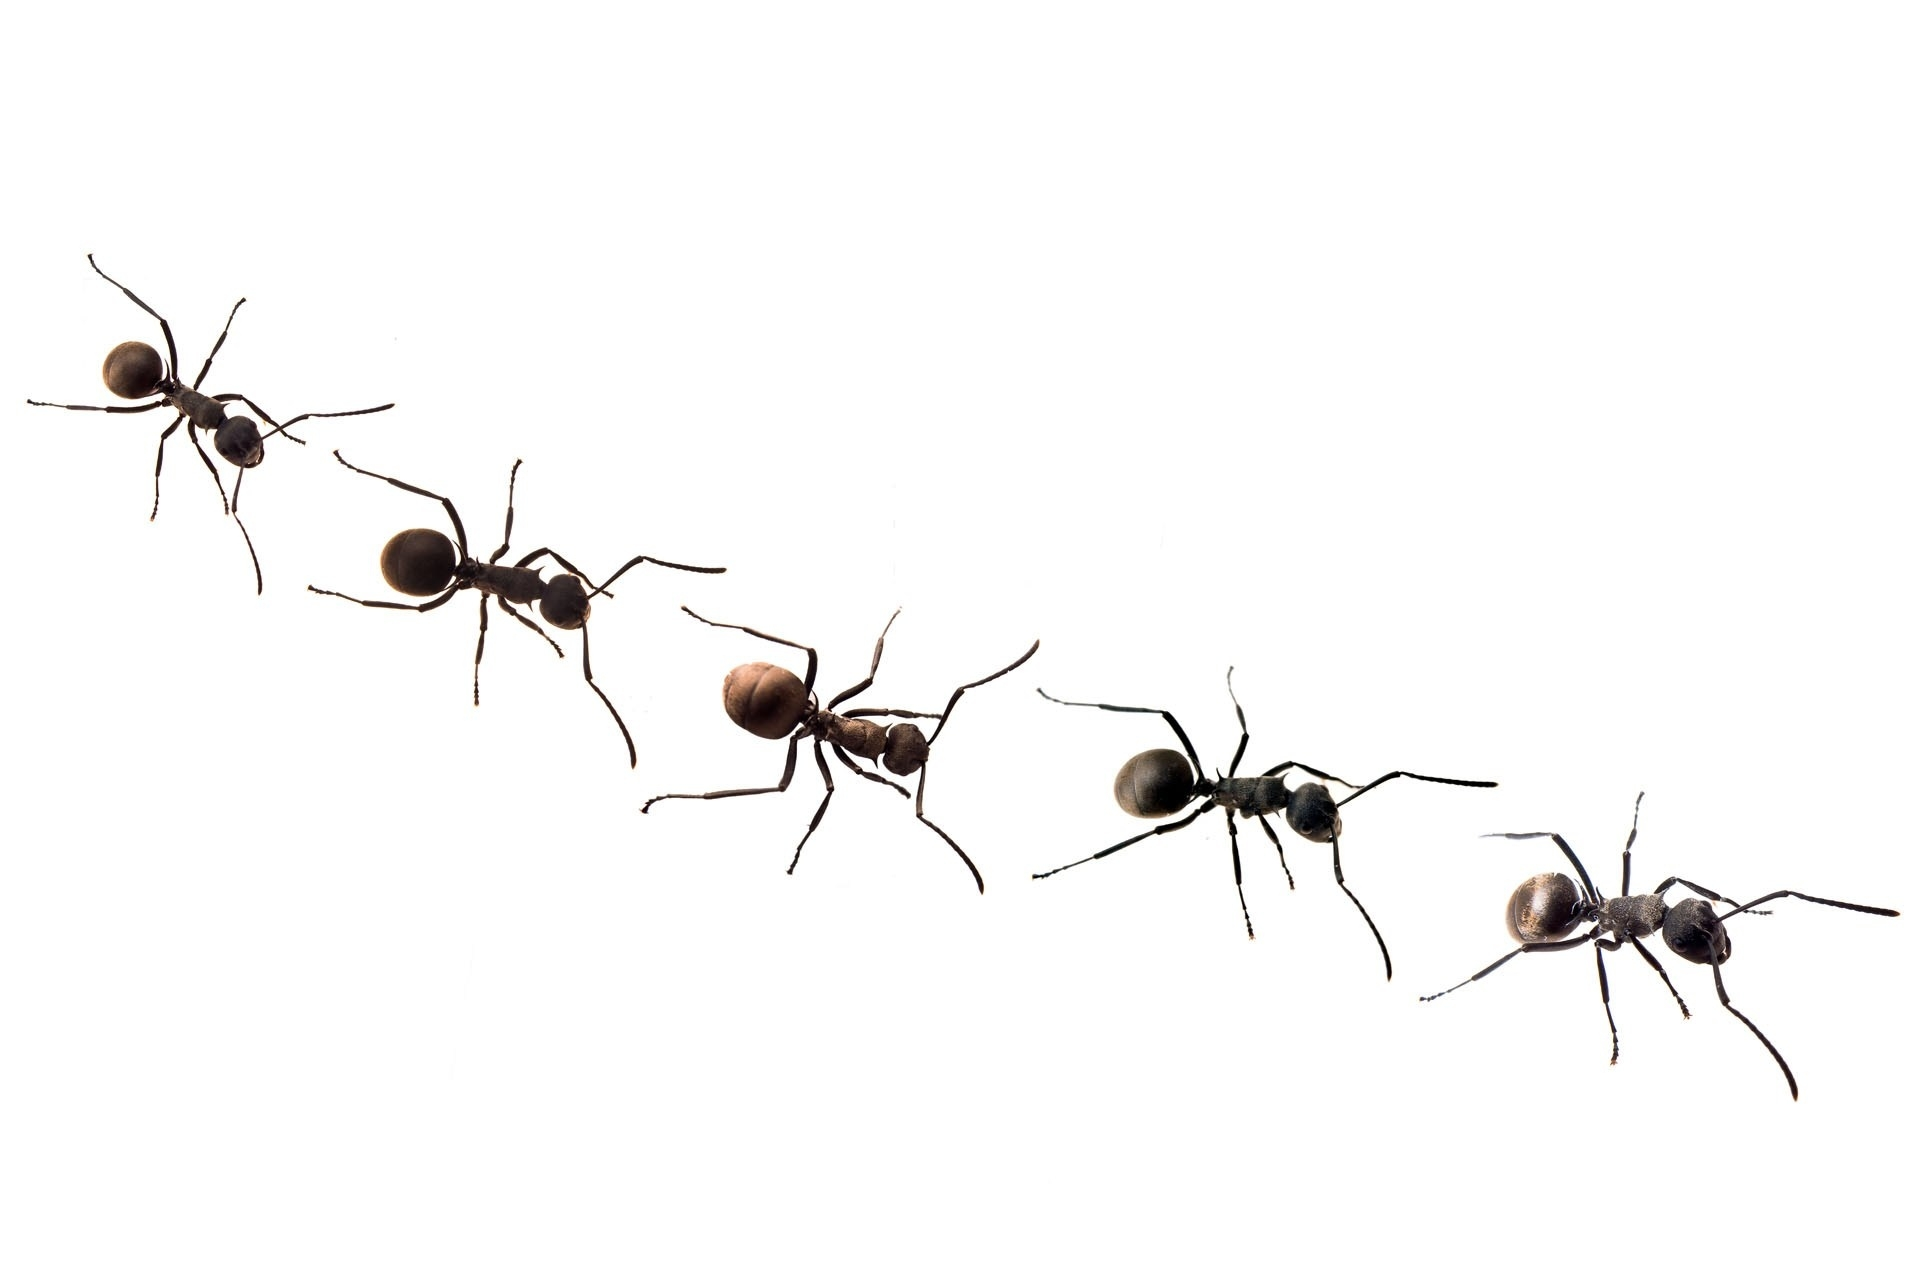 Row clipart ant. Line of ants letters